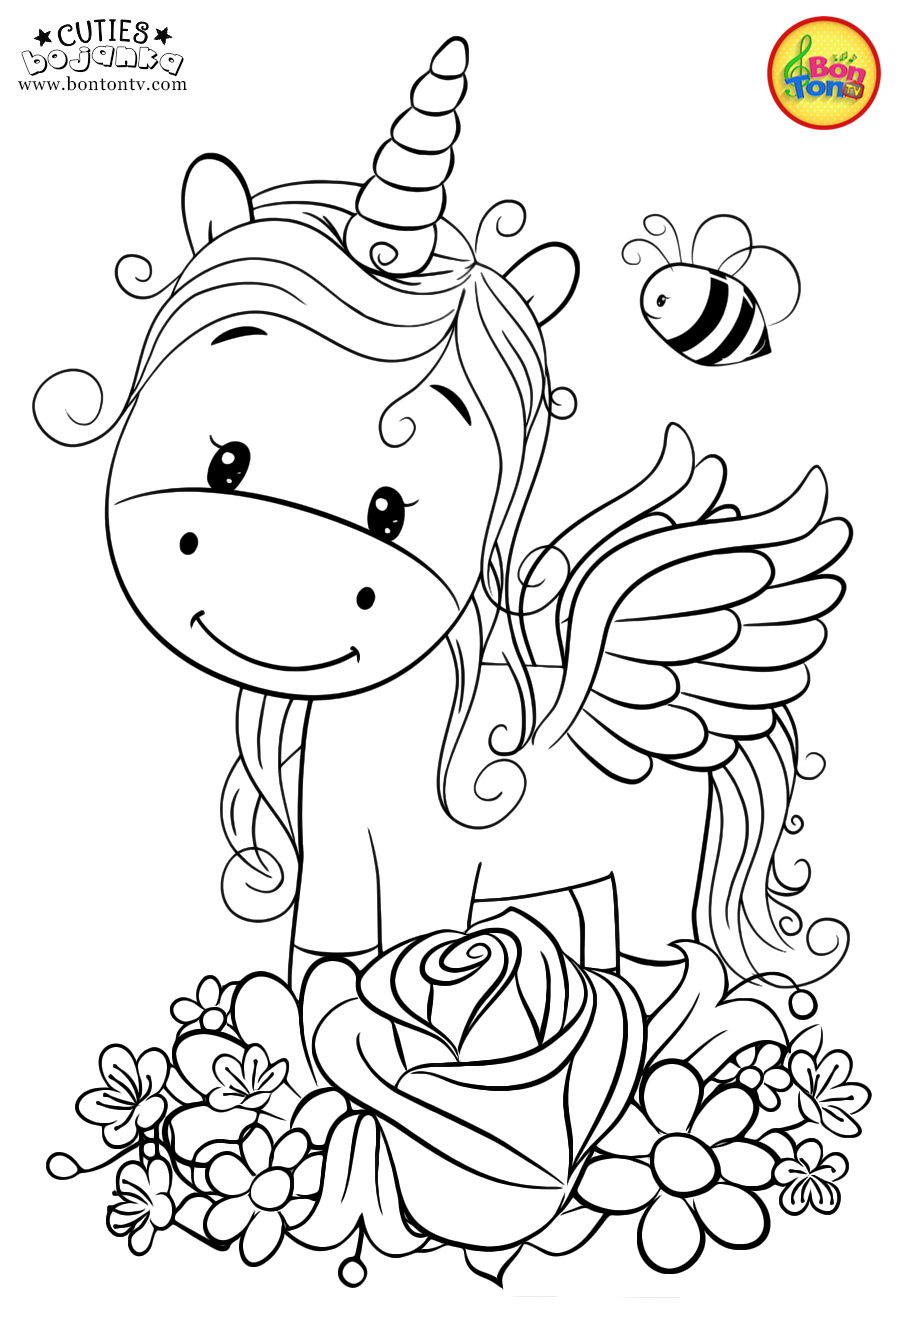 Fantastic No Cost Coloring Books For Preschool Strategies Right Here Is The Ultimate Self H In 2021 Unicorn Coloring Pages Monster Coloring Pages Animal Coloring Pages